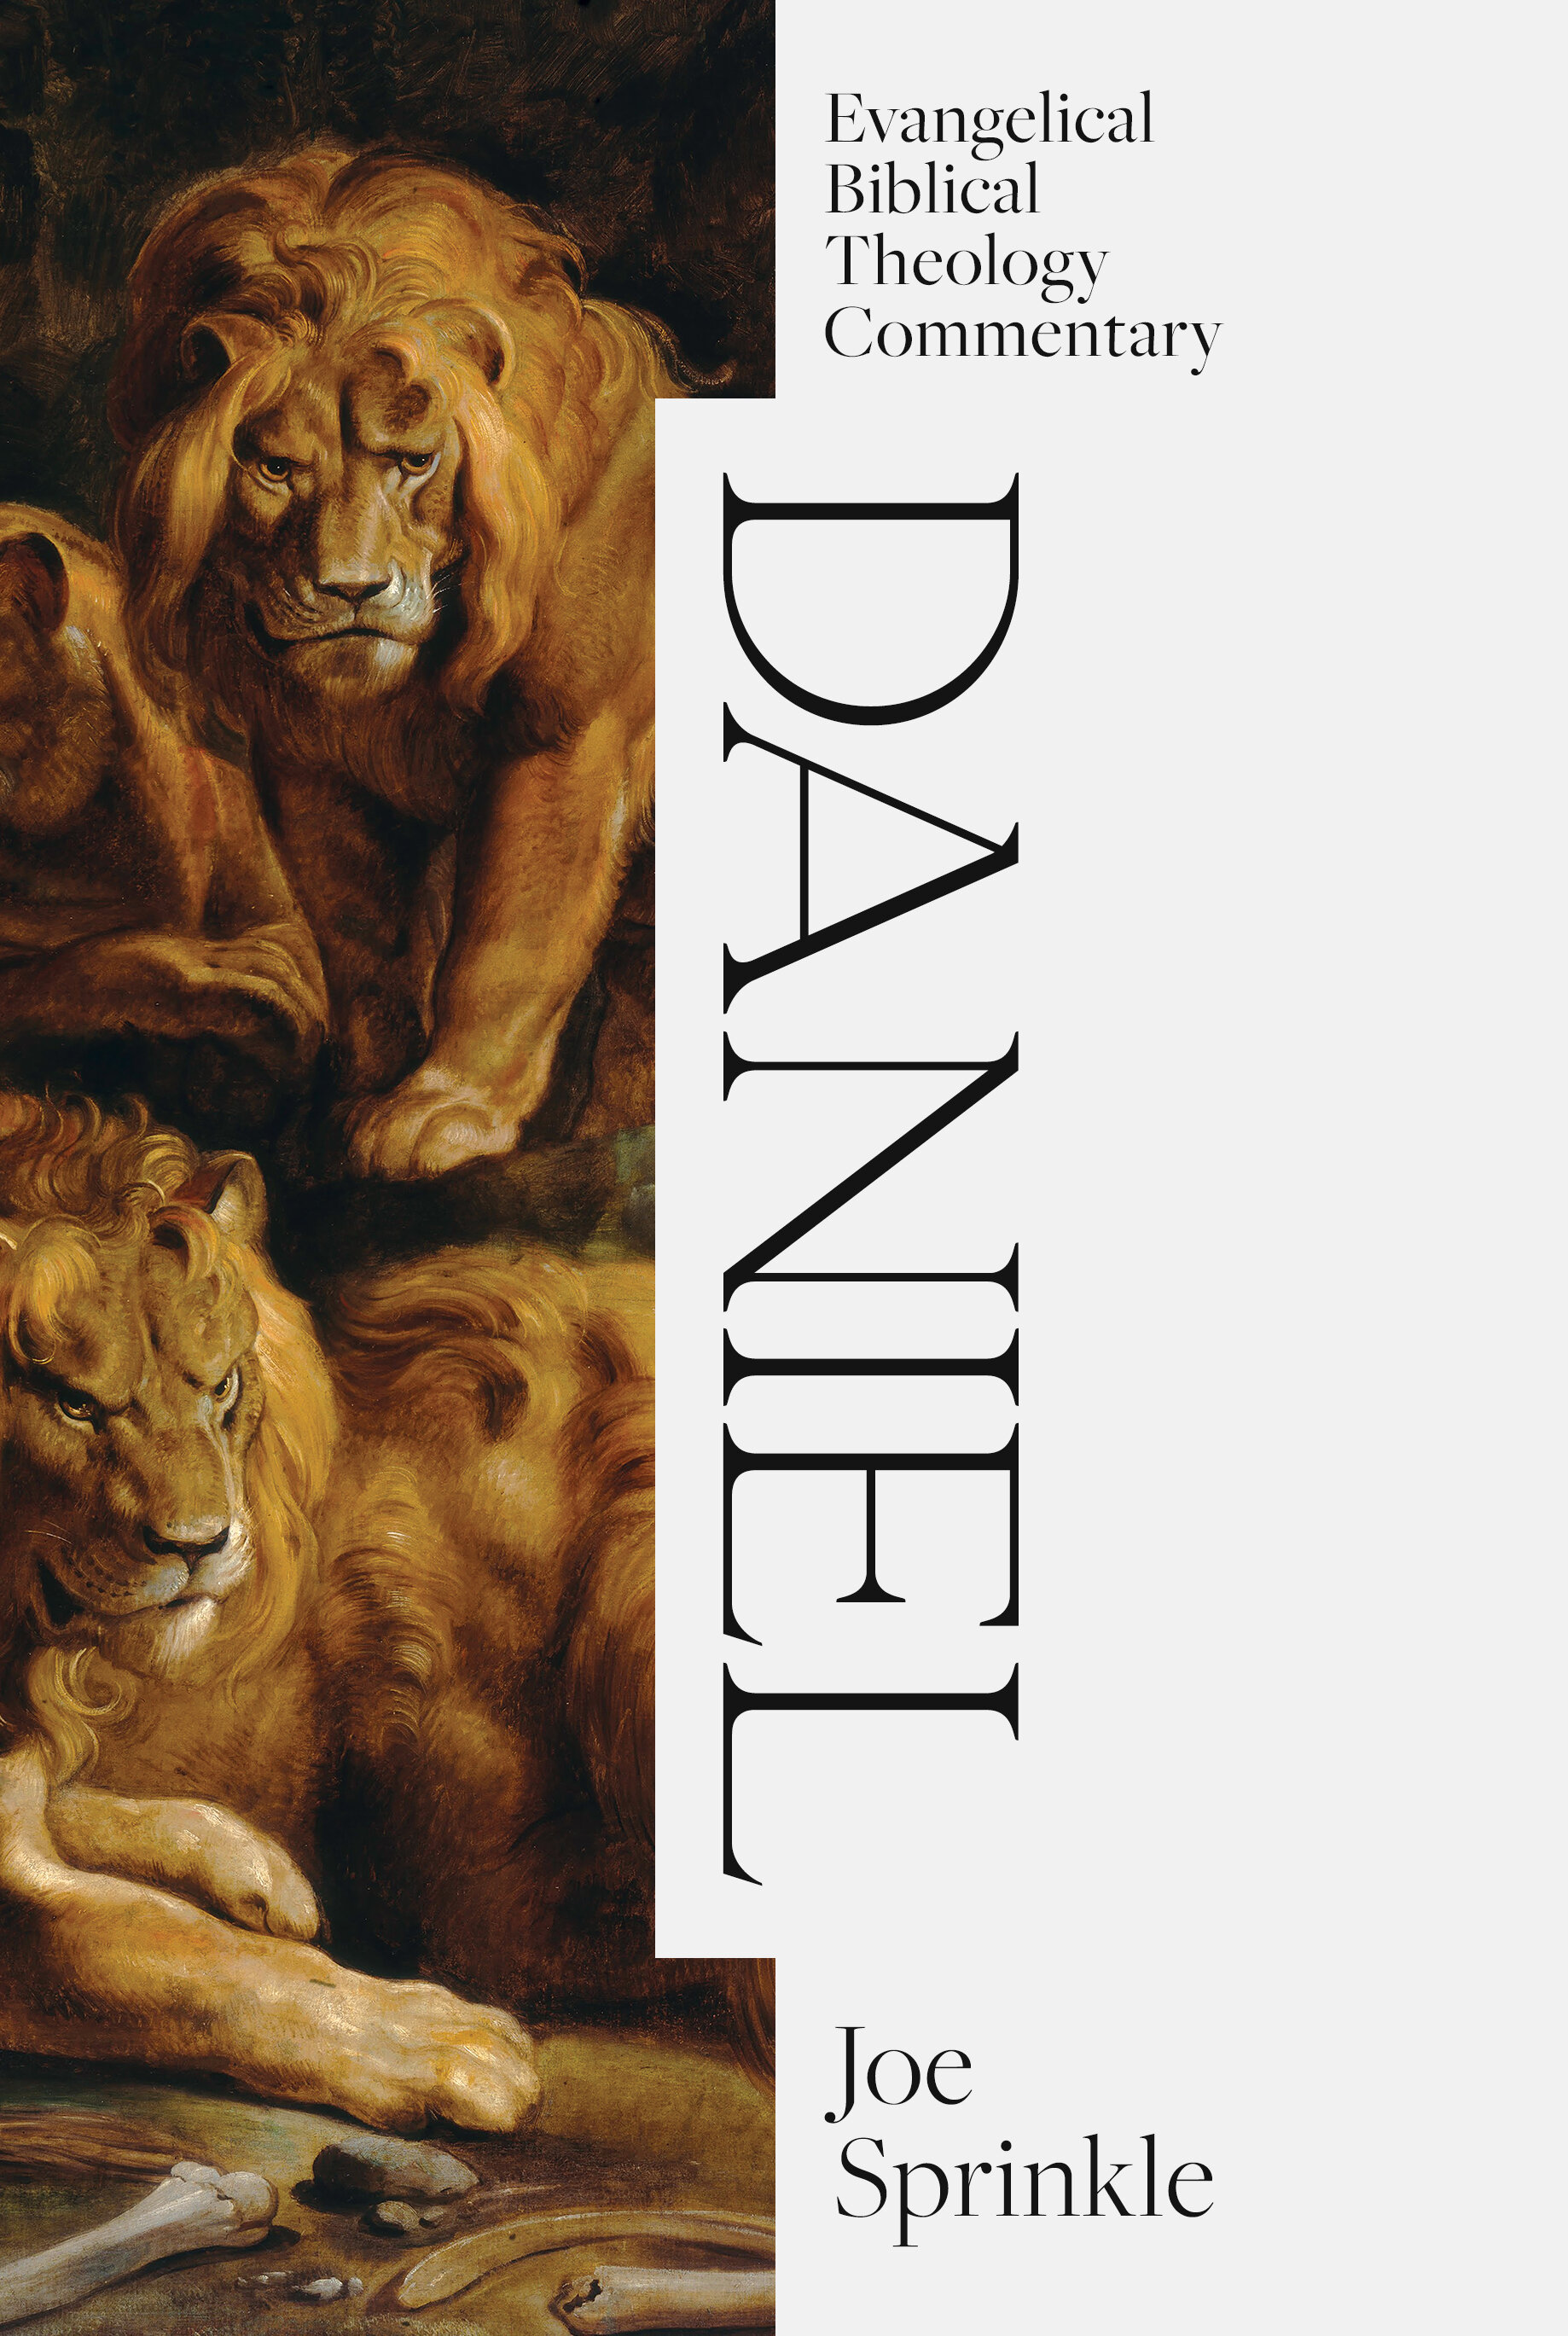 Daniel: Evangelical Biblical Theology Commentary (EBTC)